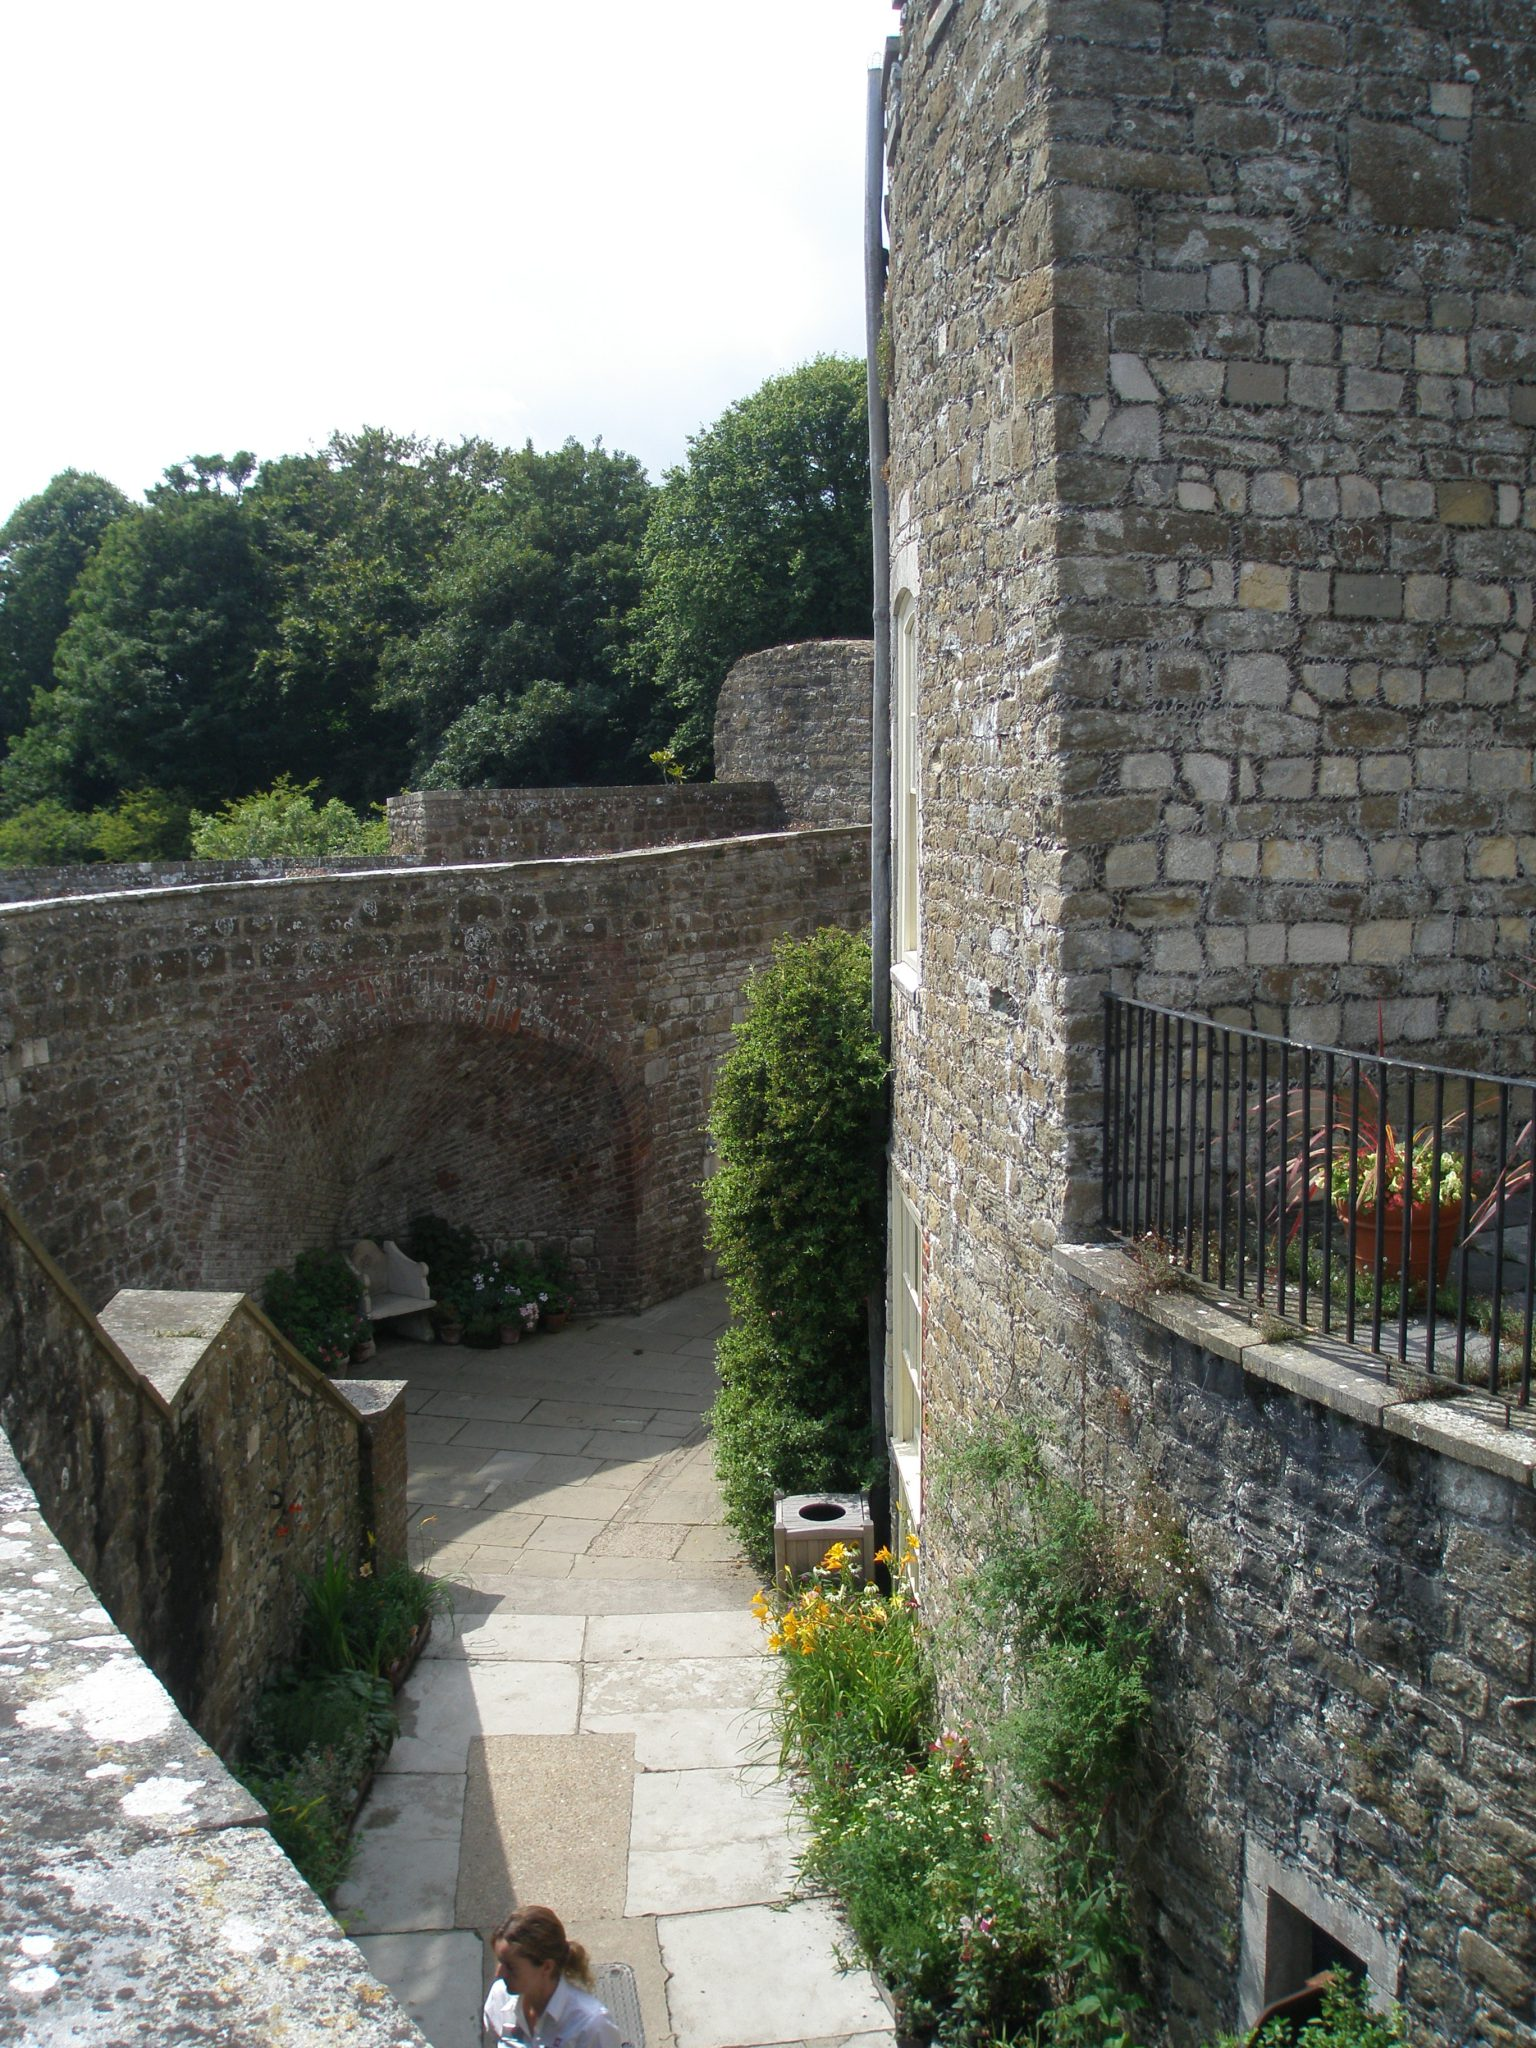 The view from the Ramparts, down into the circular, open courtyard.